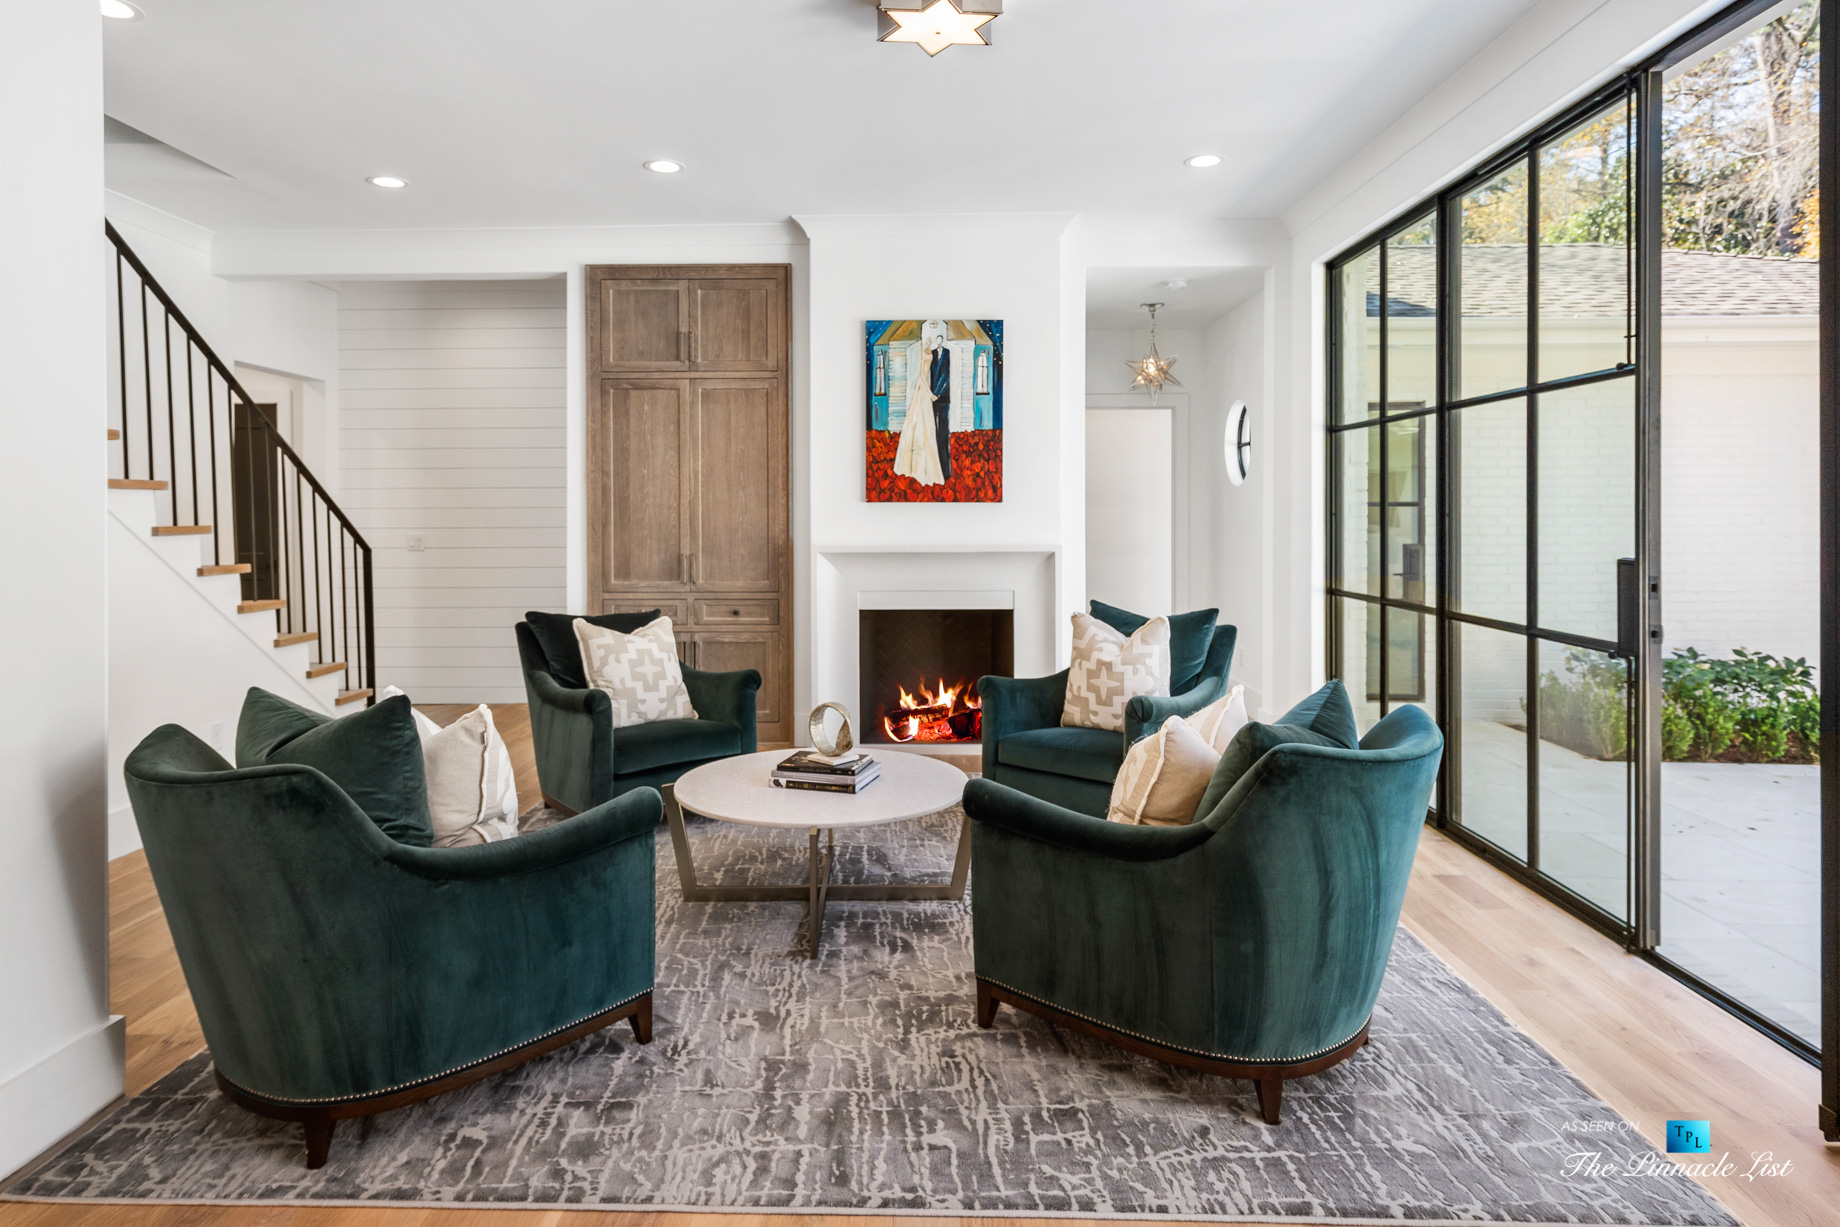 447 Valley Rd NW, Atlanta, GA, USA – Sitting Area and Glass Door – Luxury Real Estate – Tuxedo Park Home